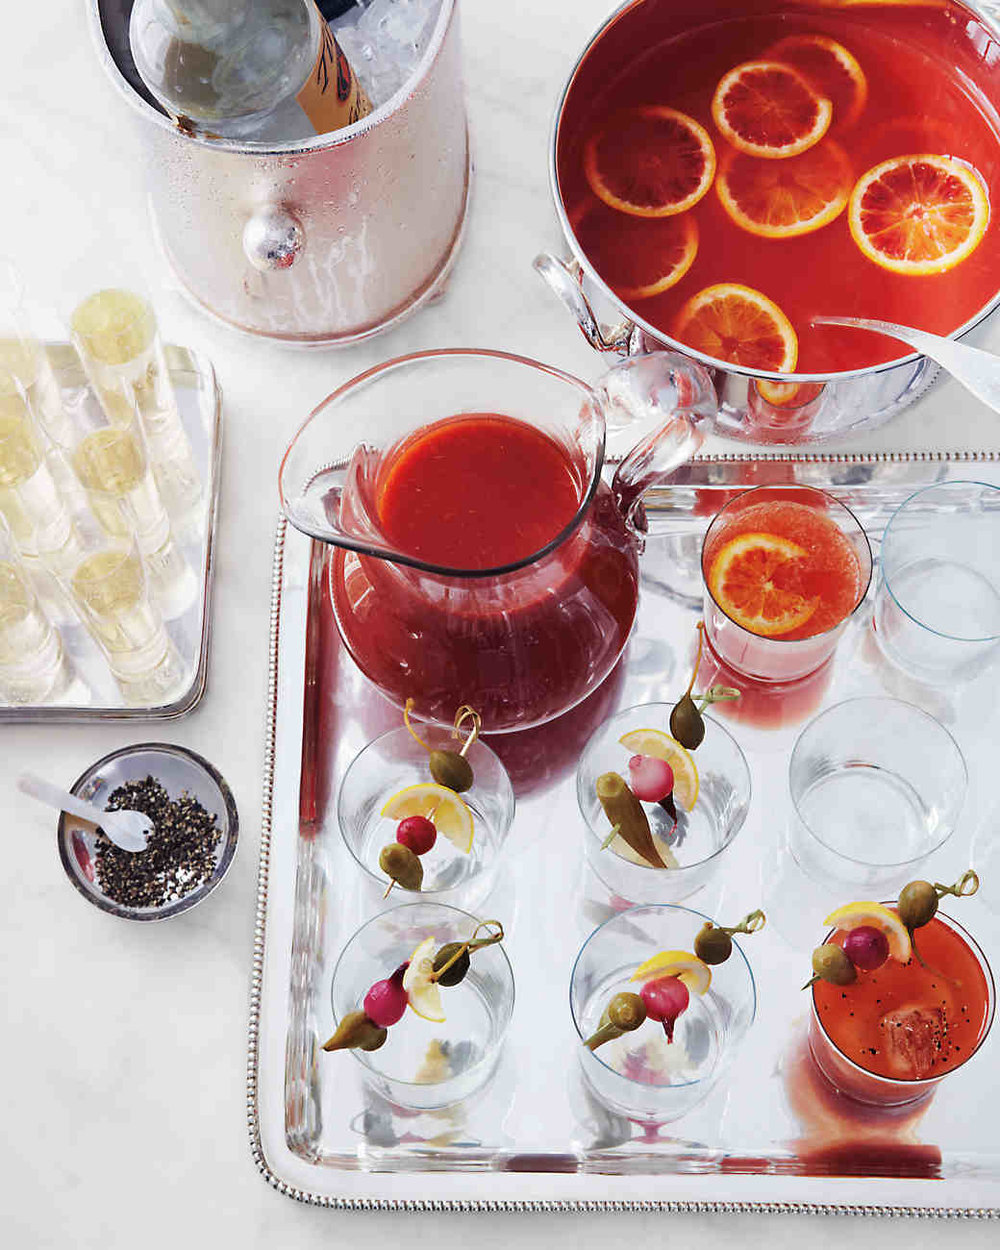 Mulled Blood-Orange Punch - Blood-orange juice and spices combine for a wonderful fall mixture. Serve as is or topped with sparkling wine, sparkling water, or vodka.